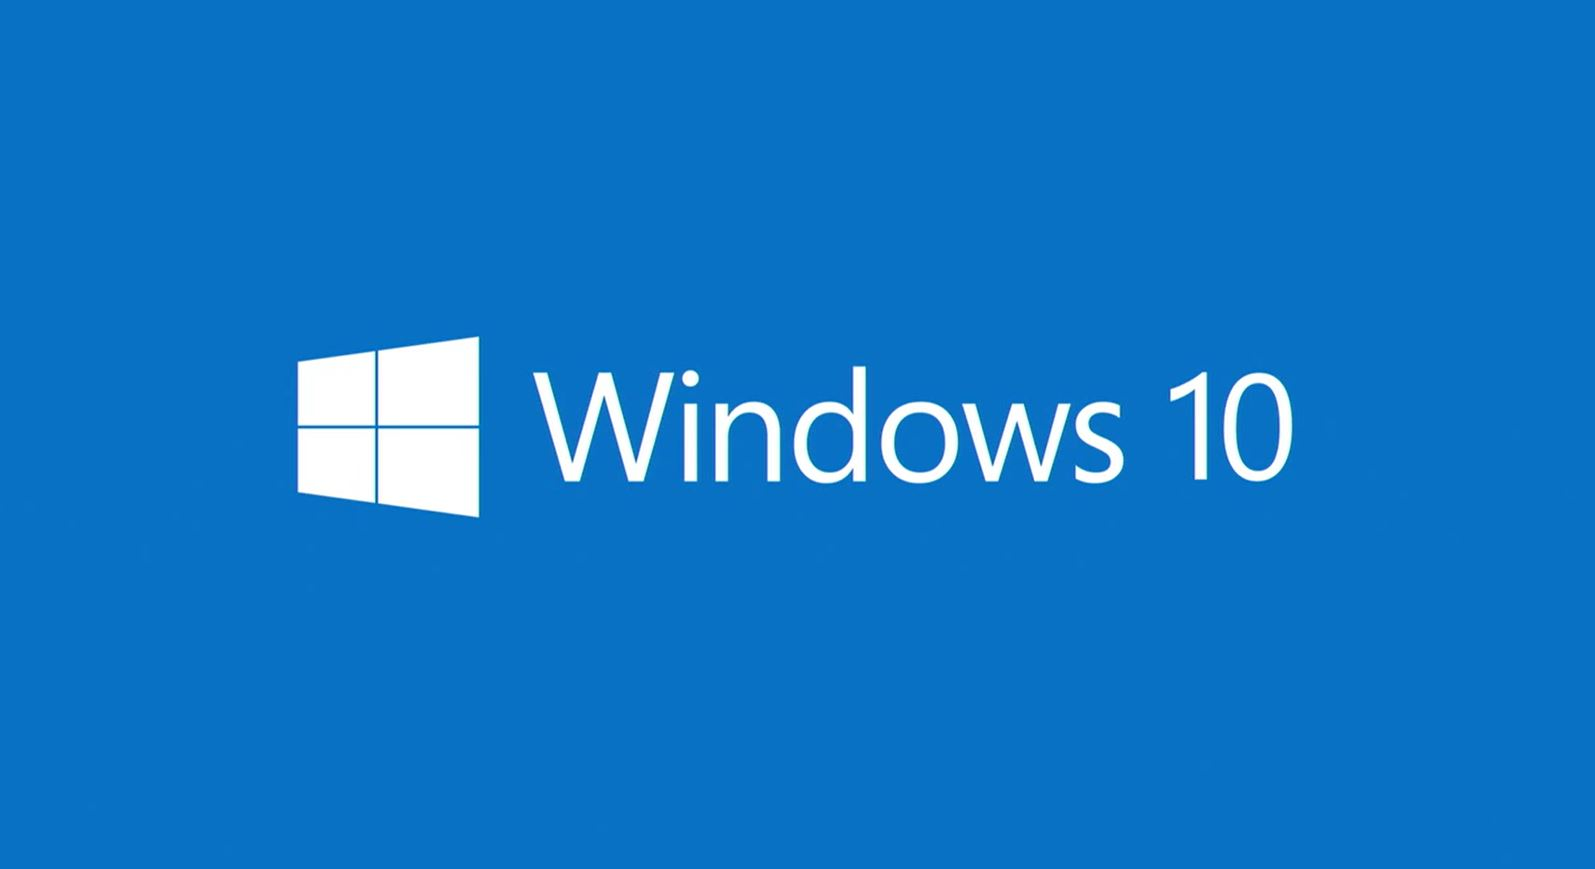 Windows 10 e os Videojogos